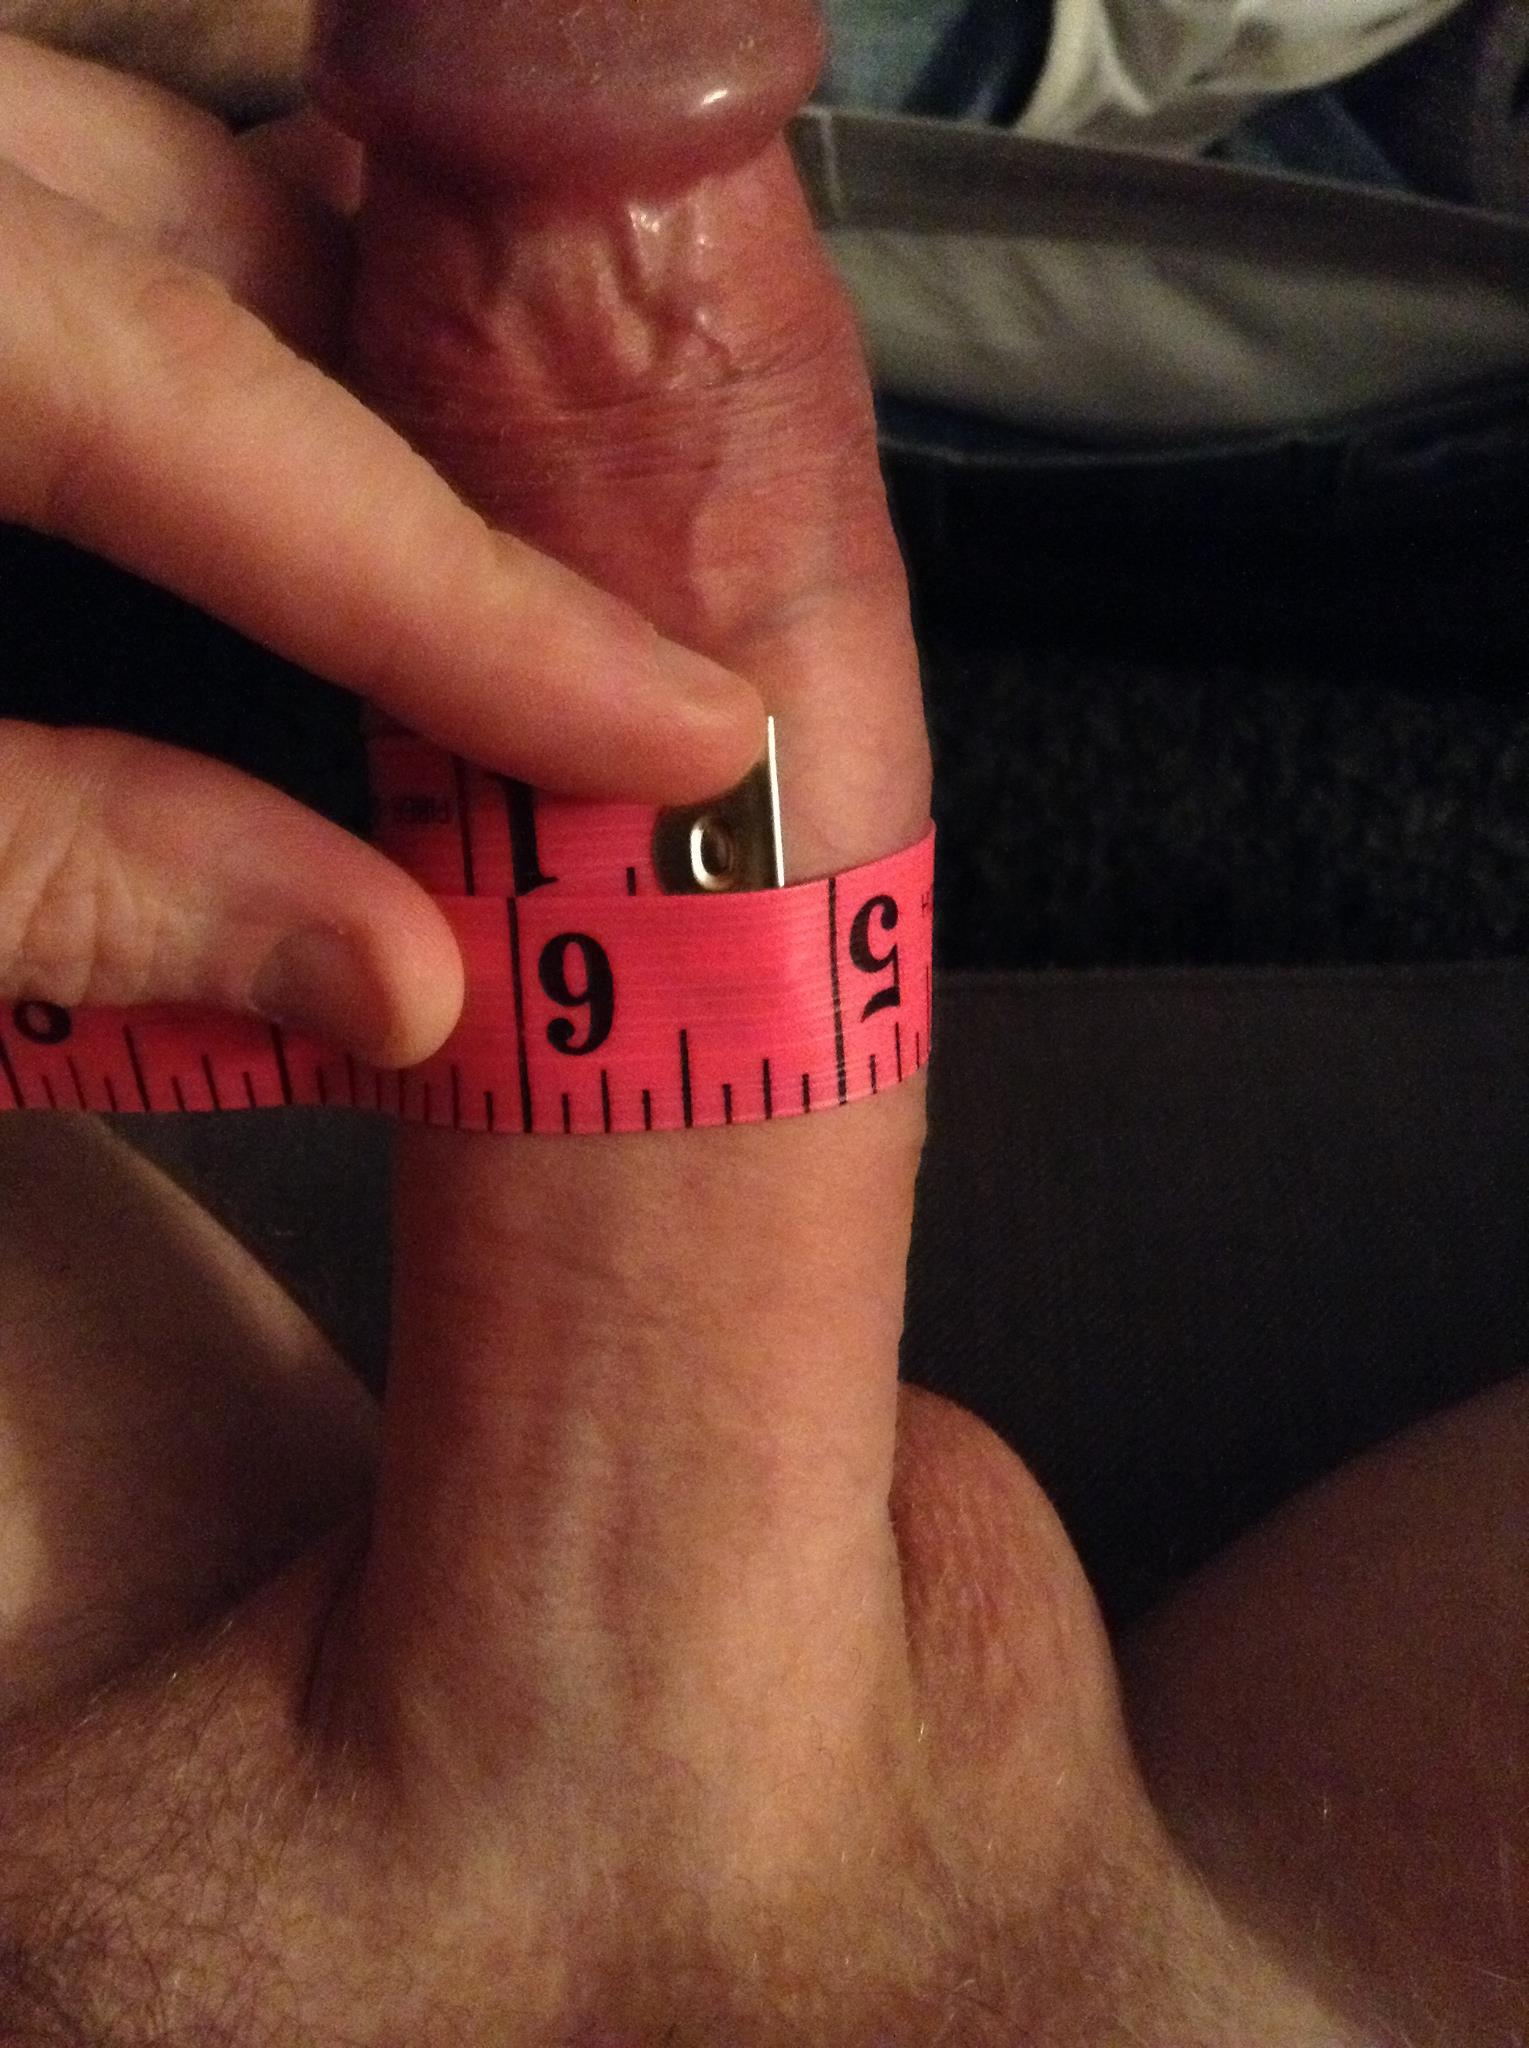 Girth size penis average